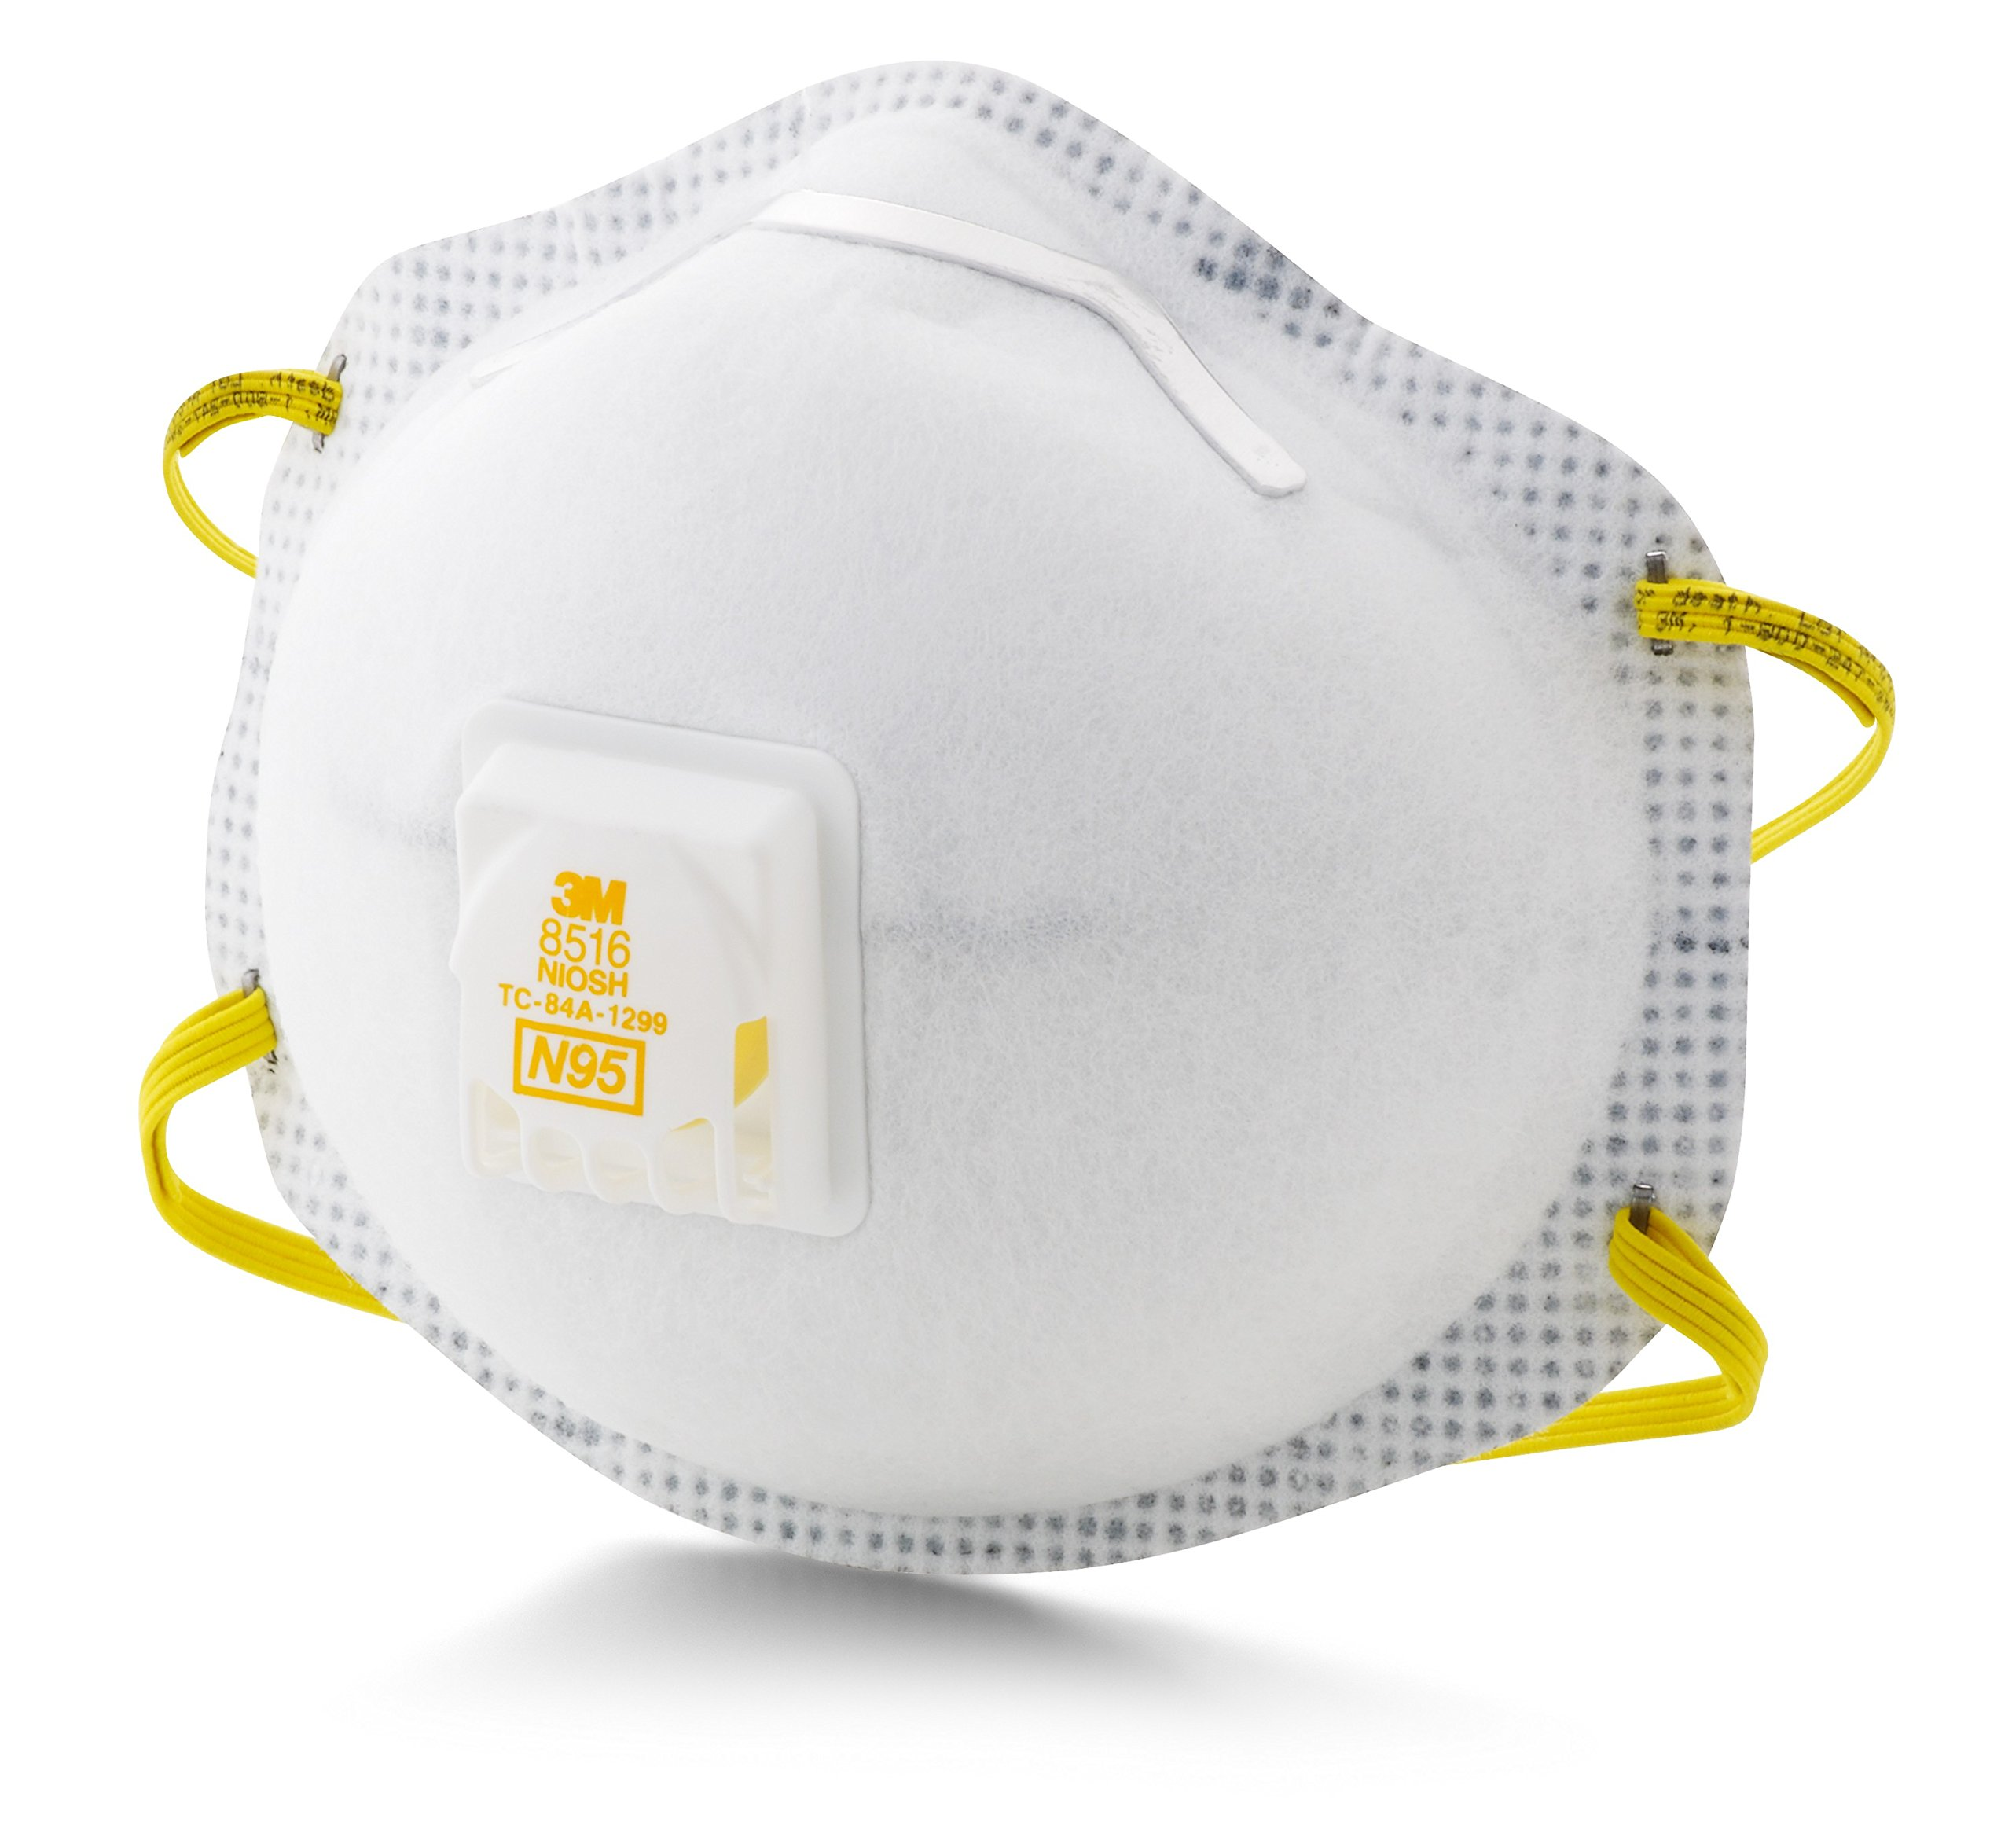 3M Particulate Respirator 8516, N95, with Nuisance Level Acid Gas Relief (Pack of 10) by 3M Personal Protective Equipment (Image #3)